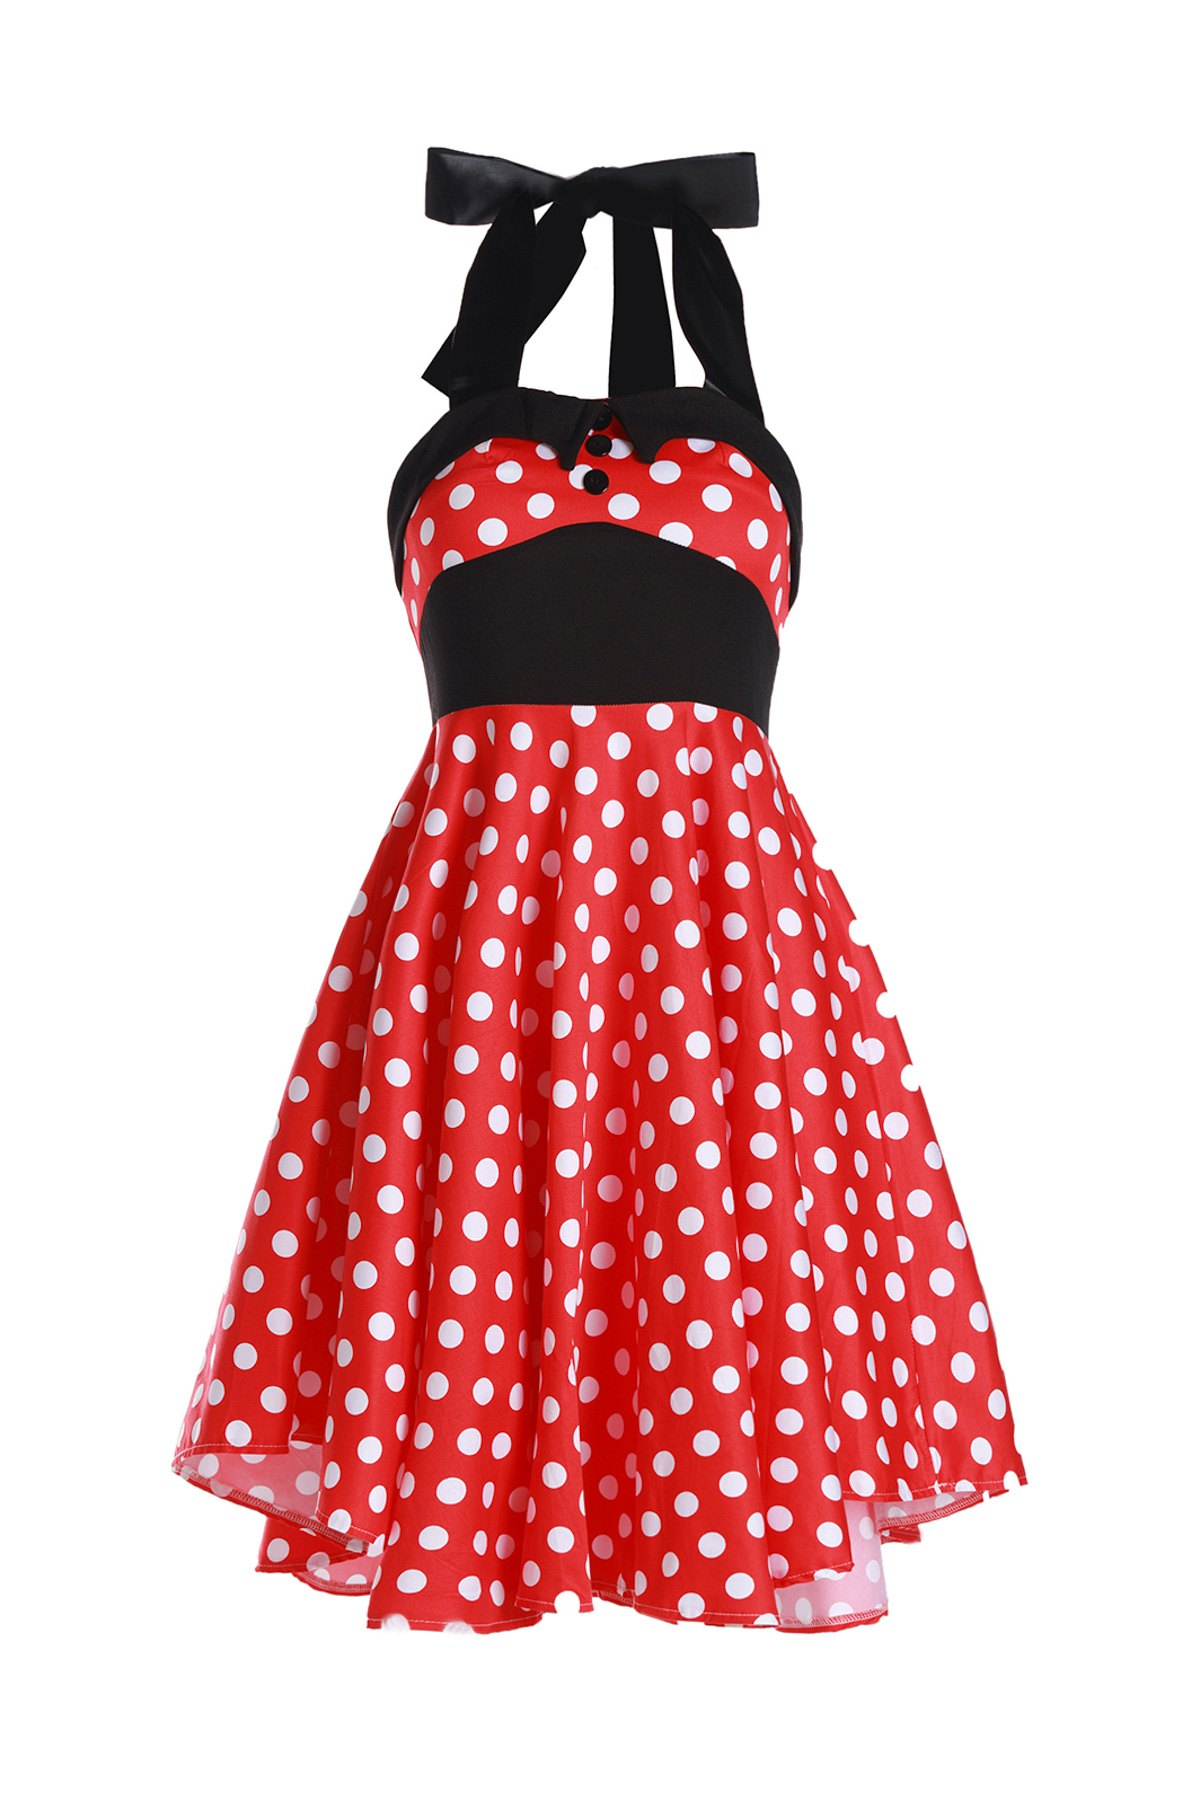 Vintage Women's Halterneck Polka Dot Print A-Line Dress - RED M